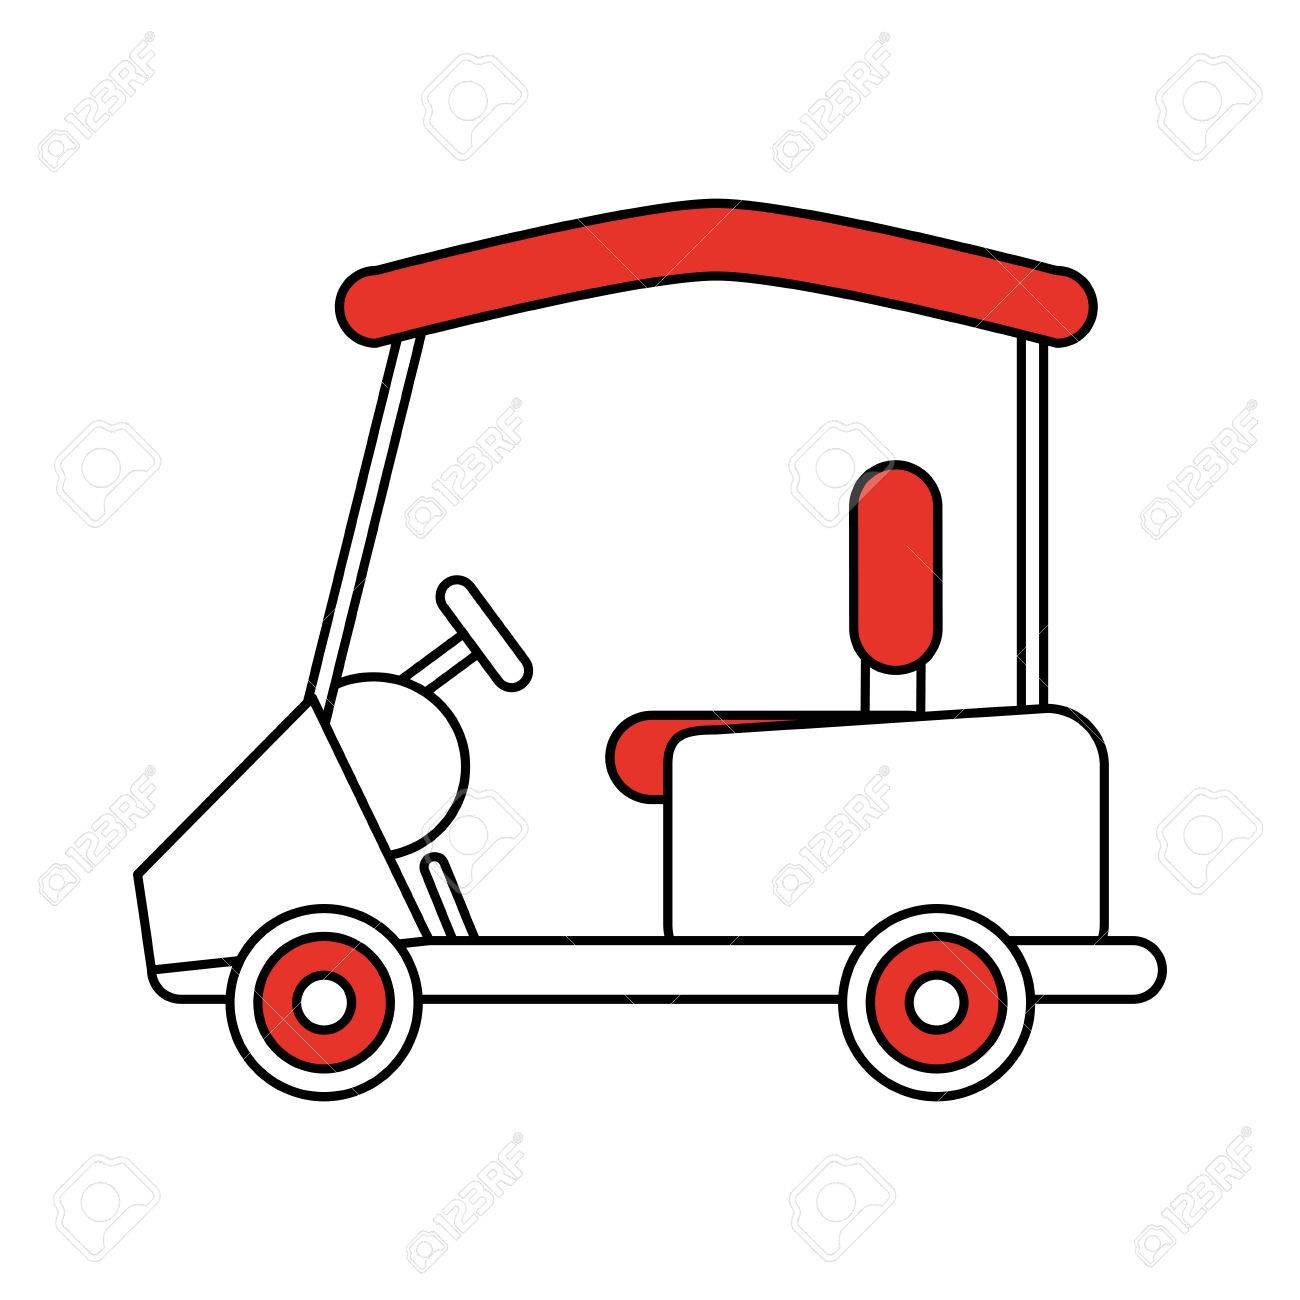 1300x1300 Color Silhouette Cartoon Golf Cart Vehicle Vector Illustration